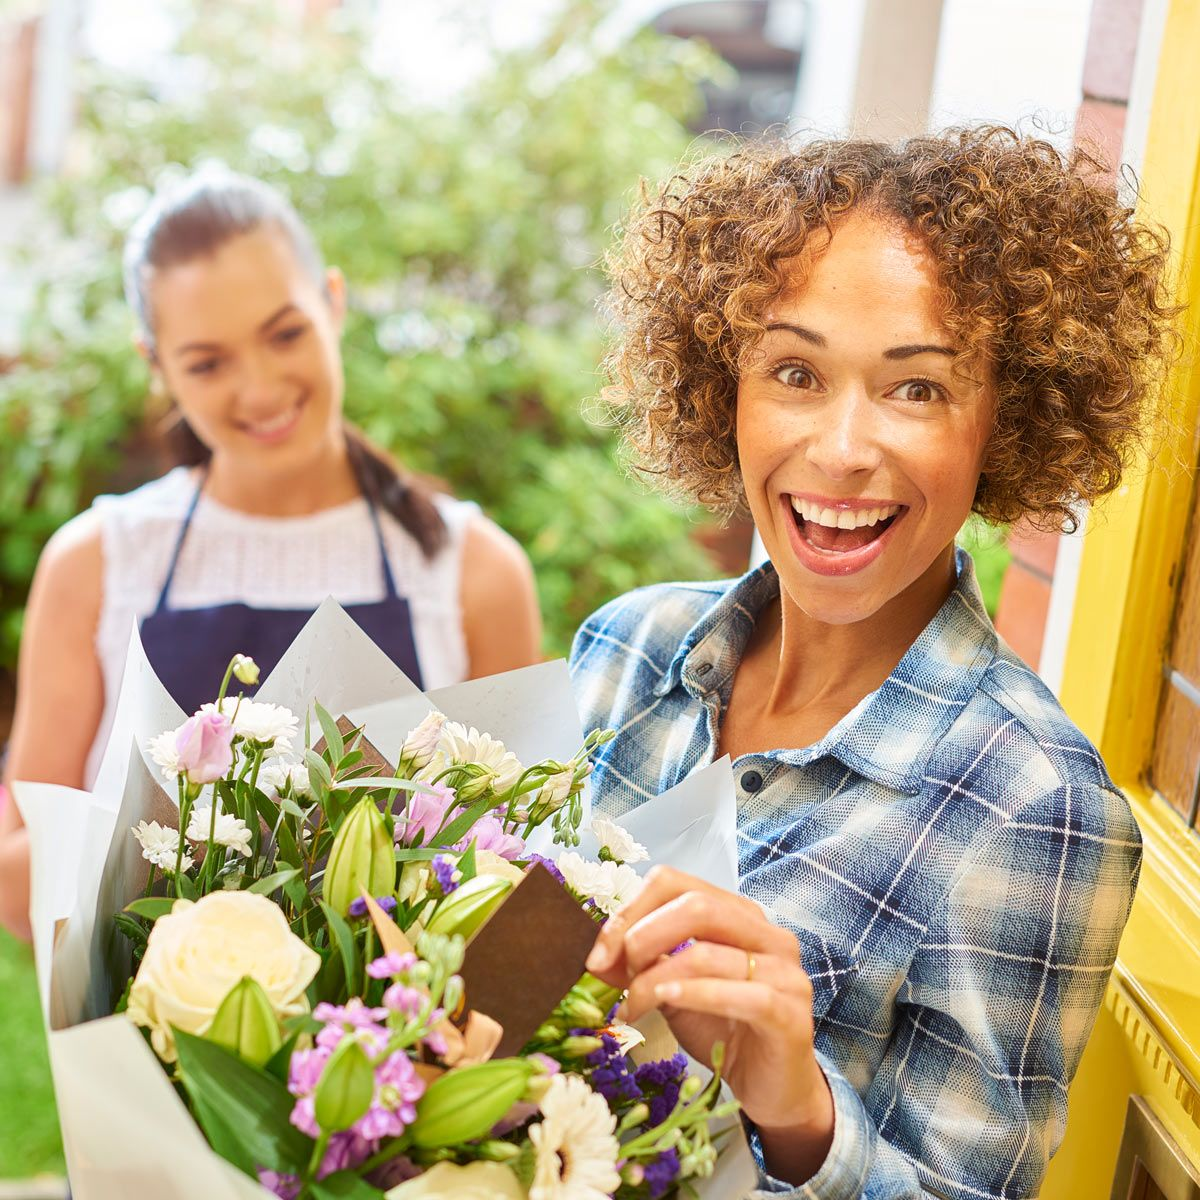 Best Flower Delivery Companies 8 Best Flower Delivery Companies